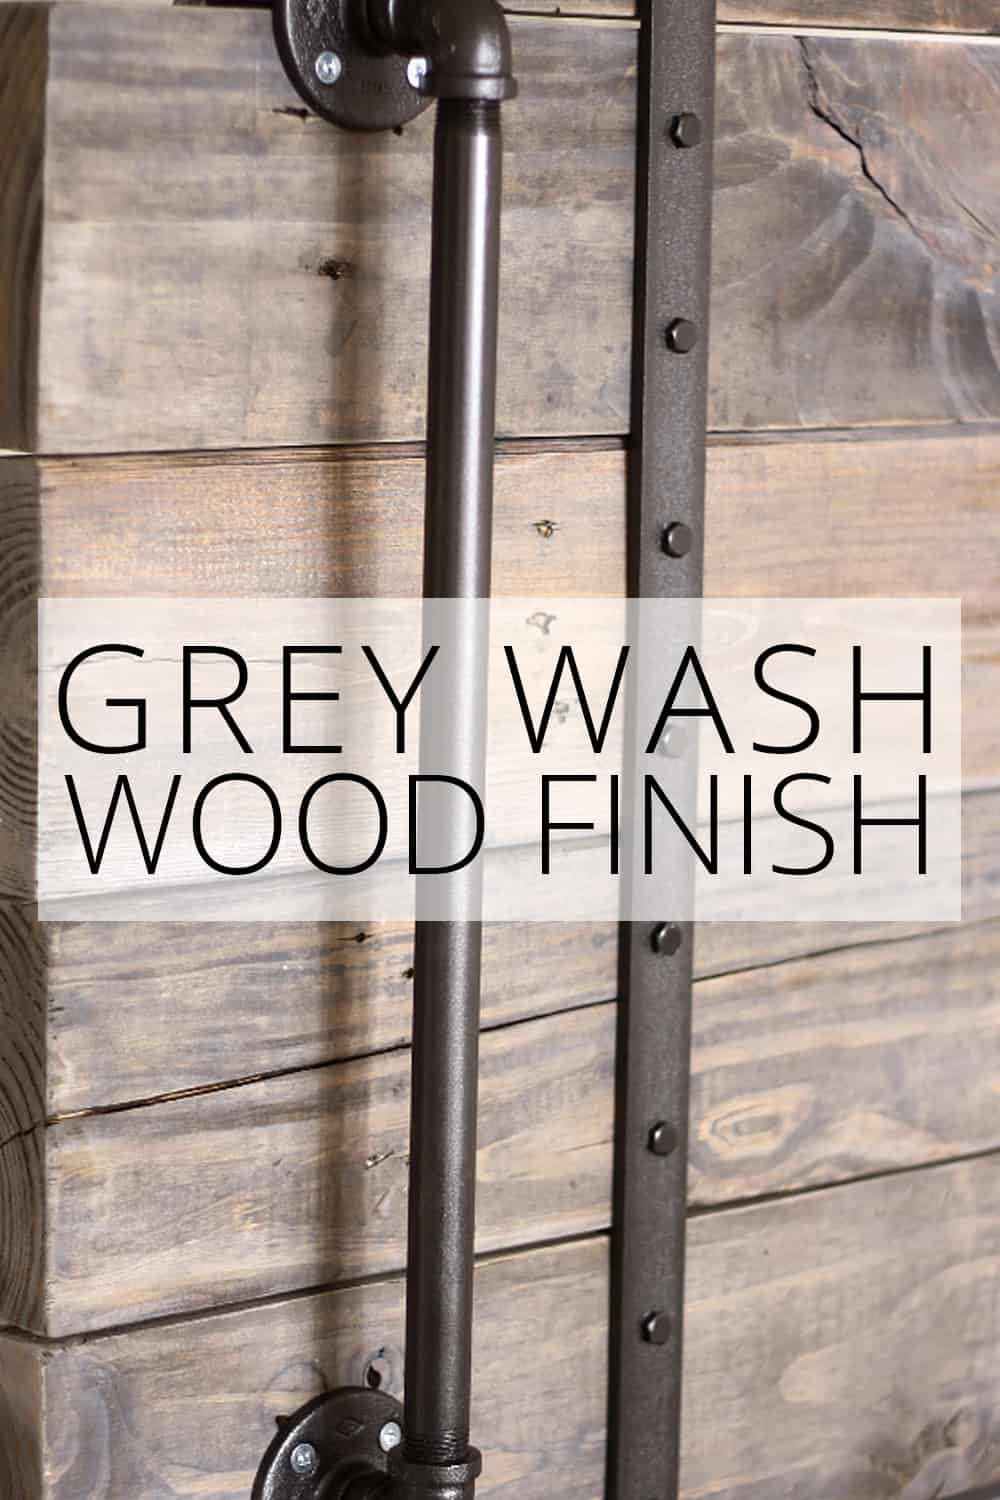 Grey Wash Wood Finish How To Get The